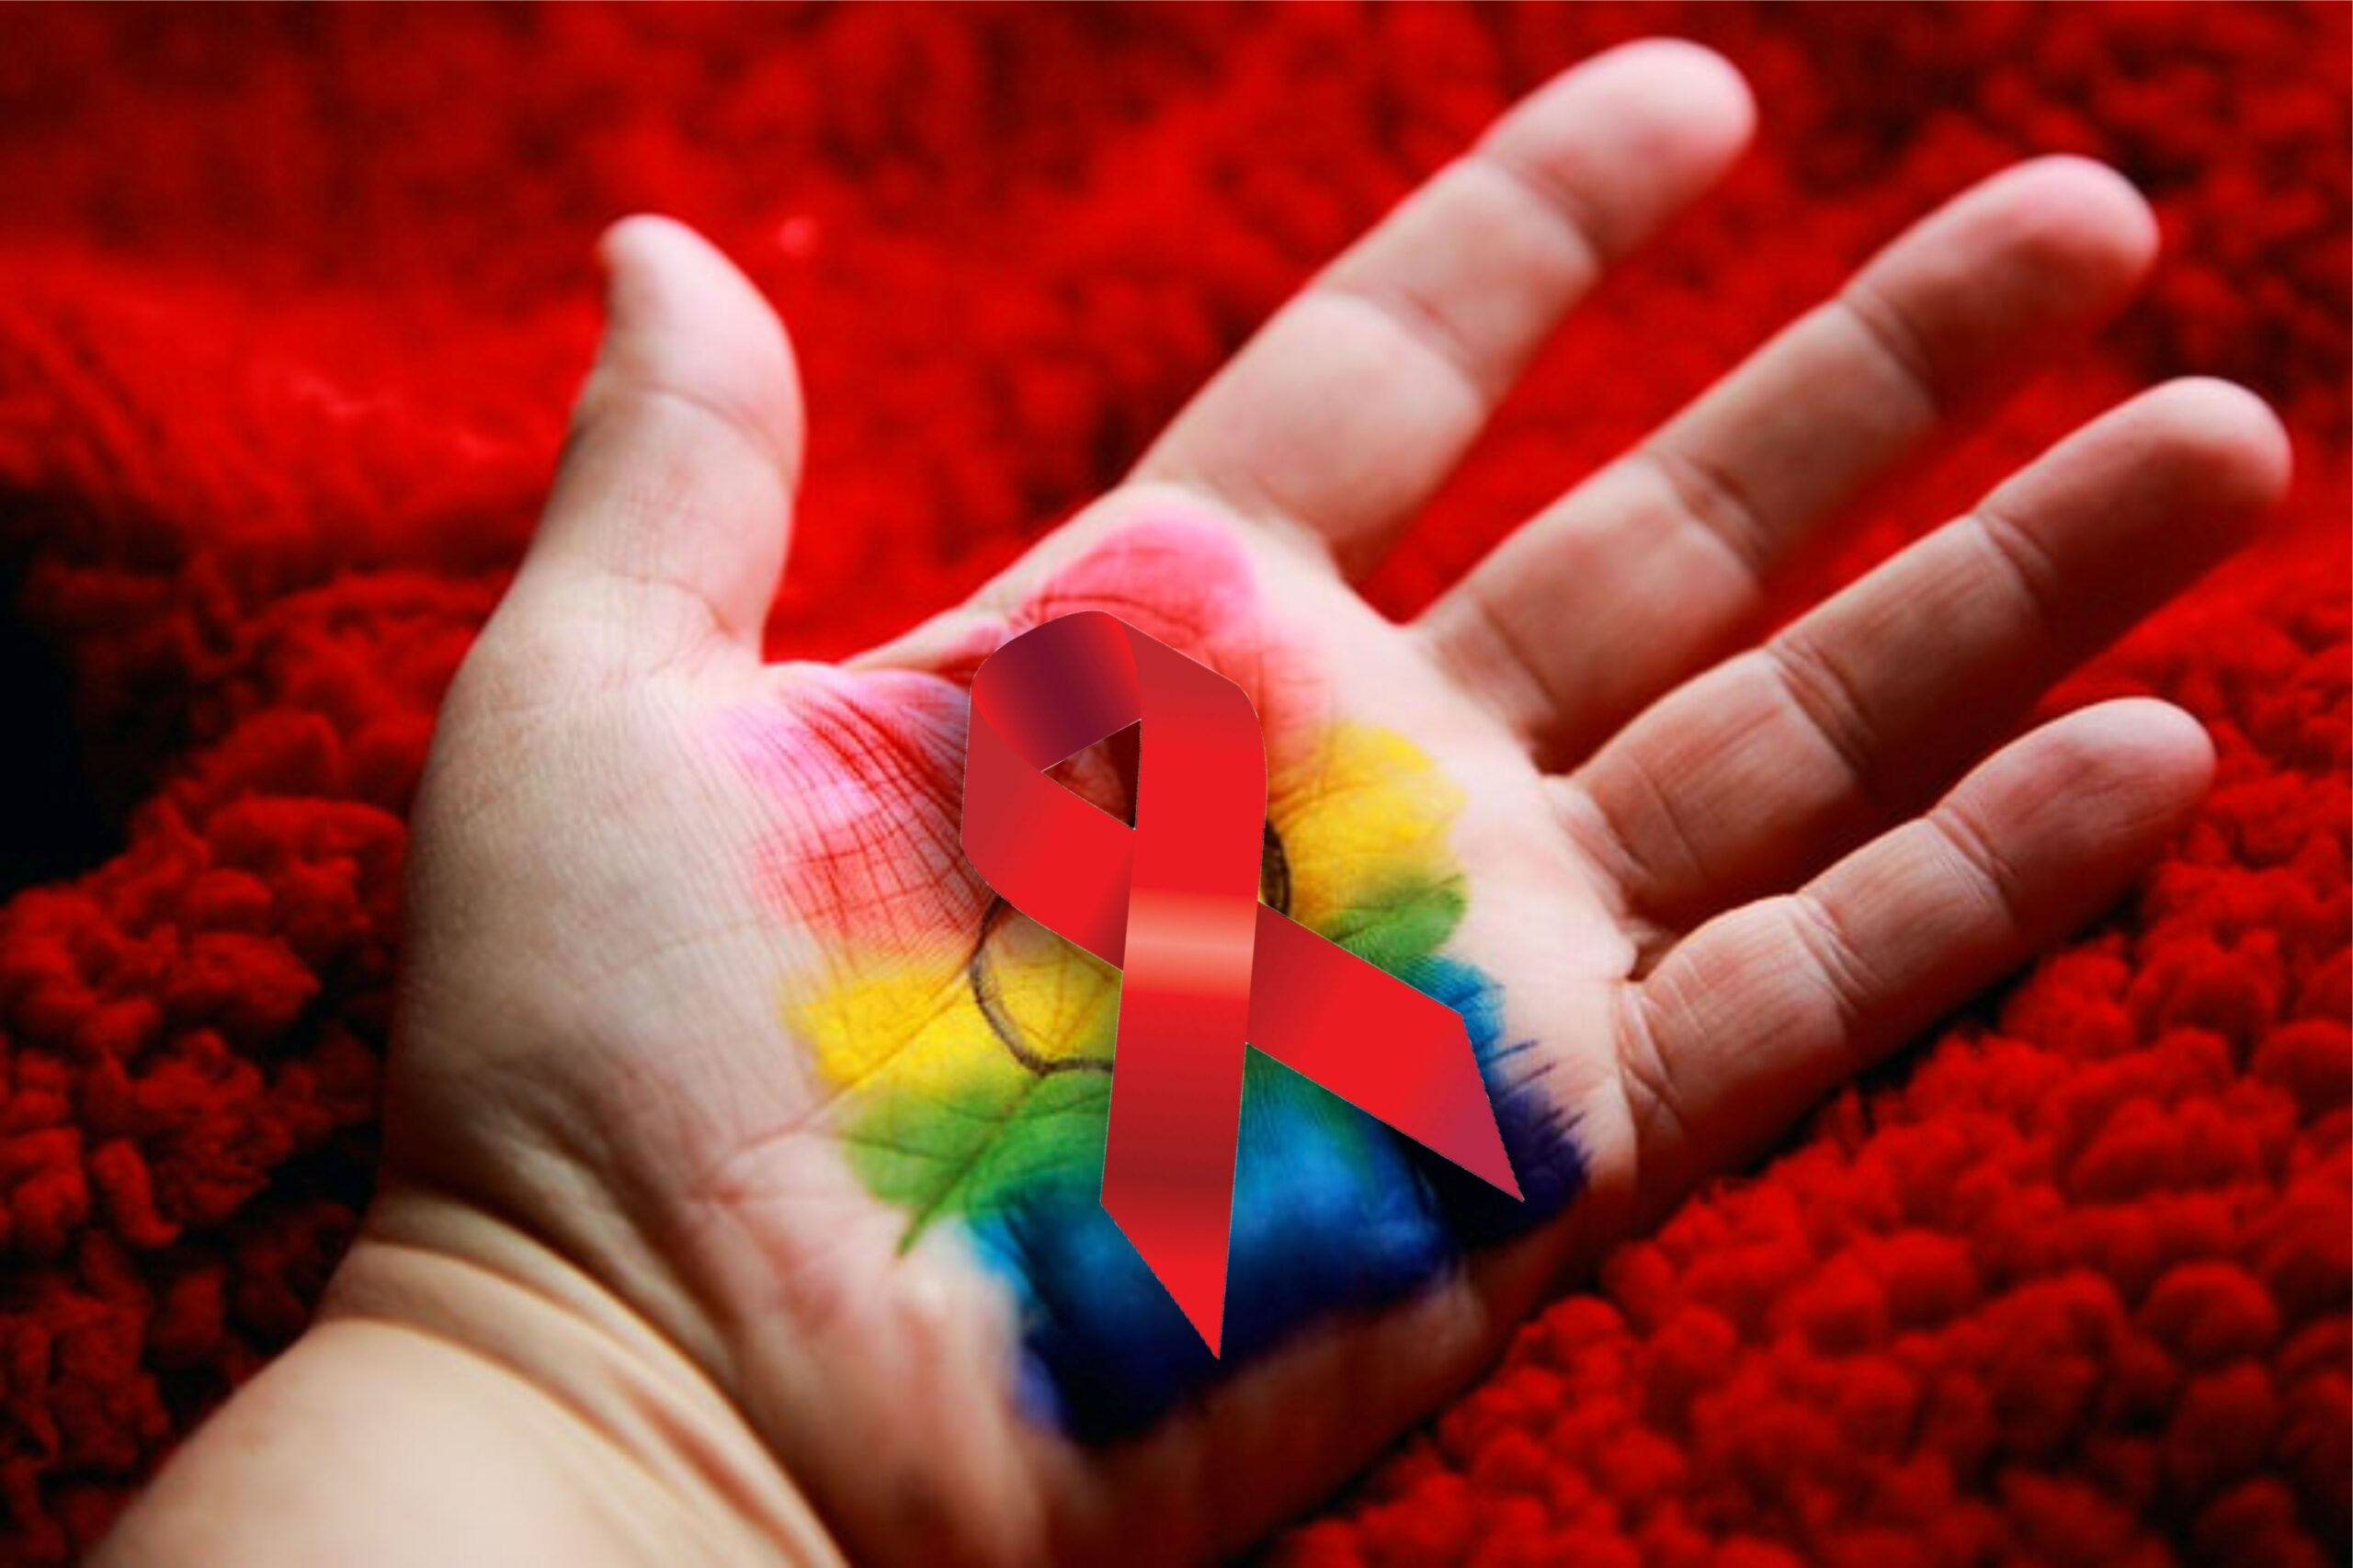 Transgenders unable to access HIV prevention and care services.